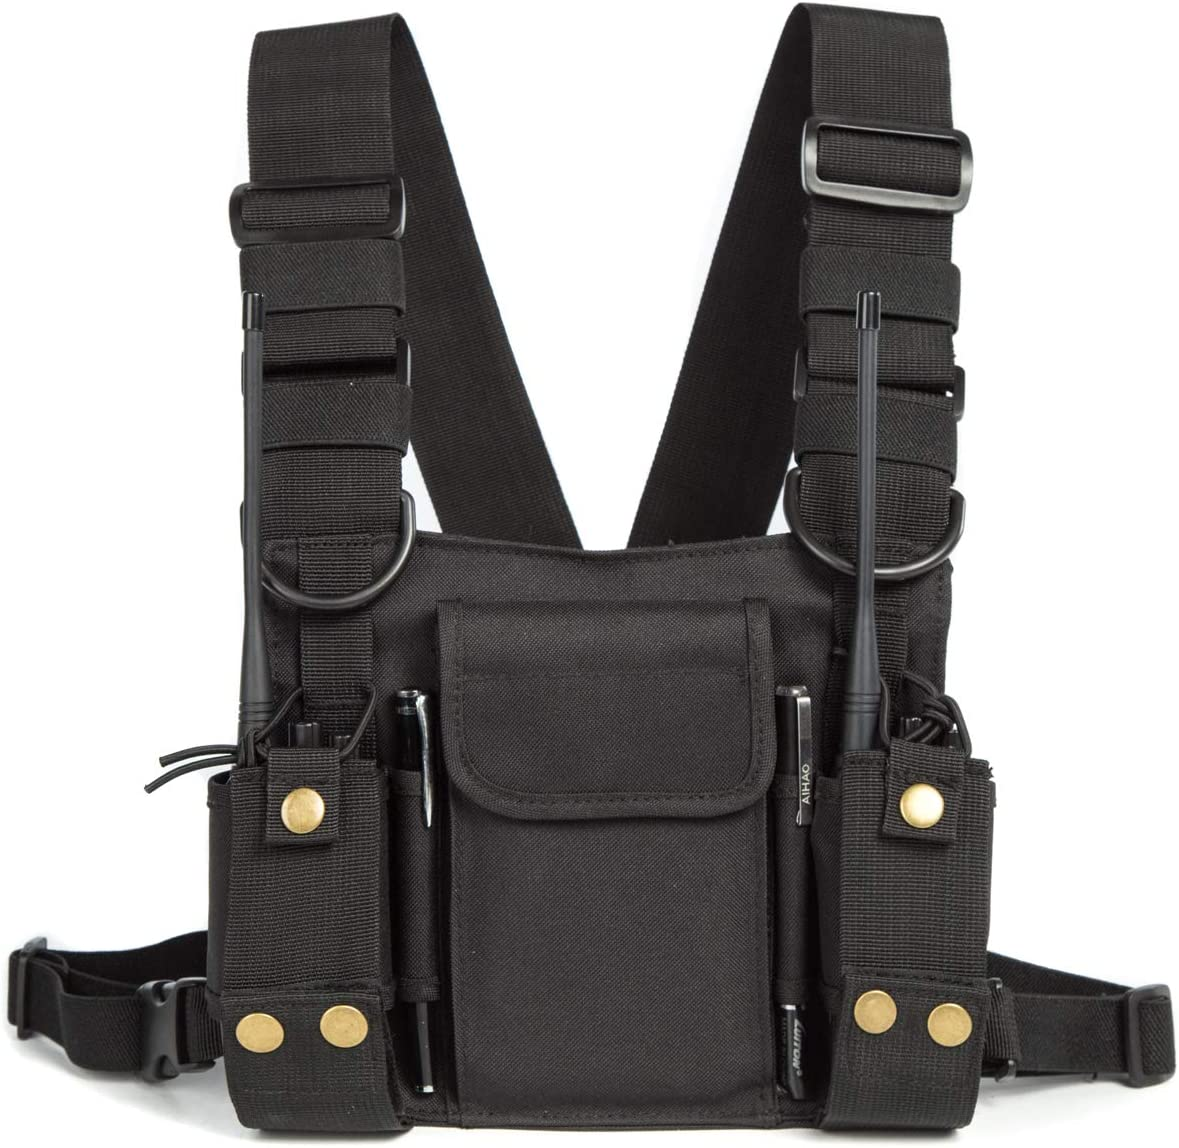 Black Radio Shoulder Holster Chest Harness Holder Vest Rig for Two Way Radio Chest Front Pack Pouch Walkie Talkie Case with Front Pouches for Kenwood Arcshell Retevis Baofeng UV-5R F8HP UV-82 888S